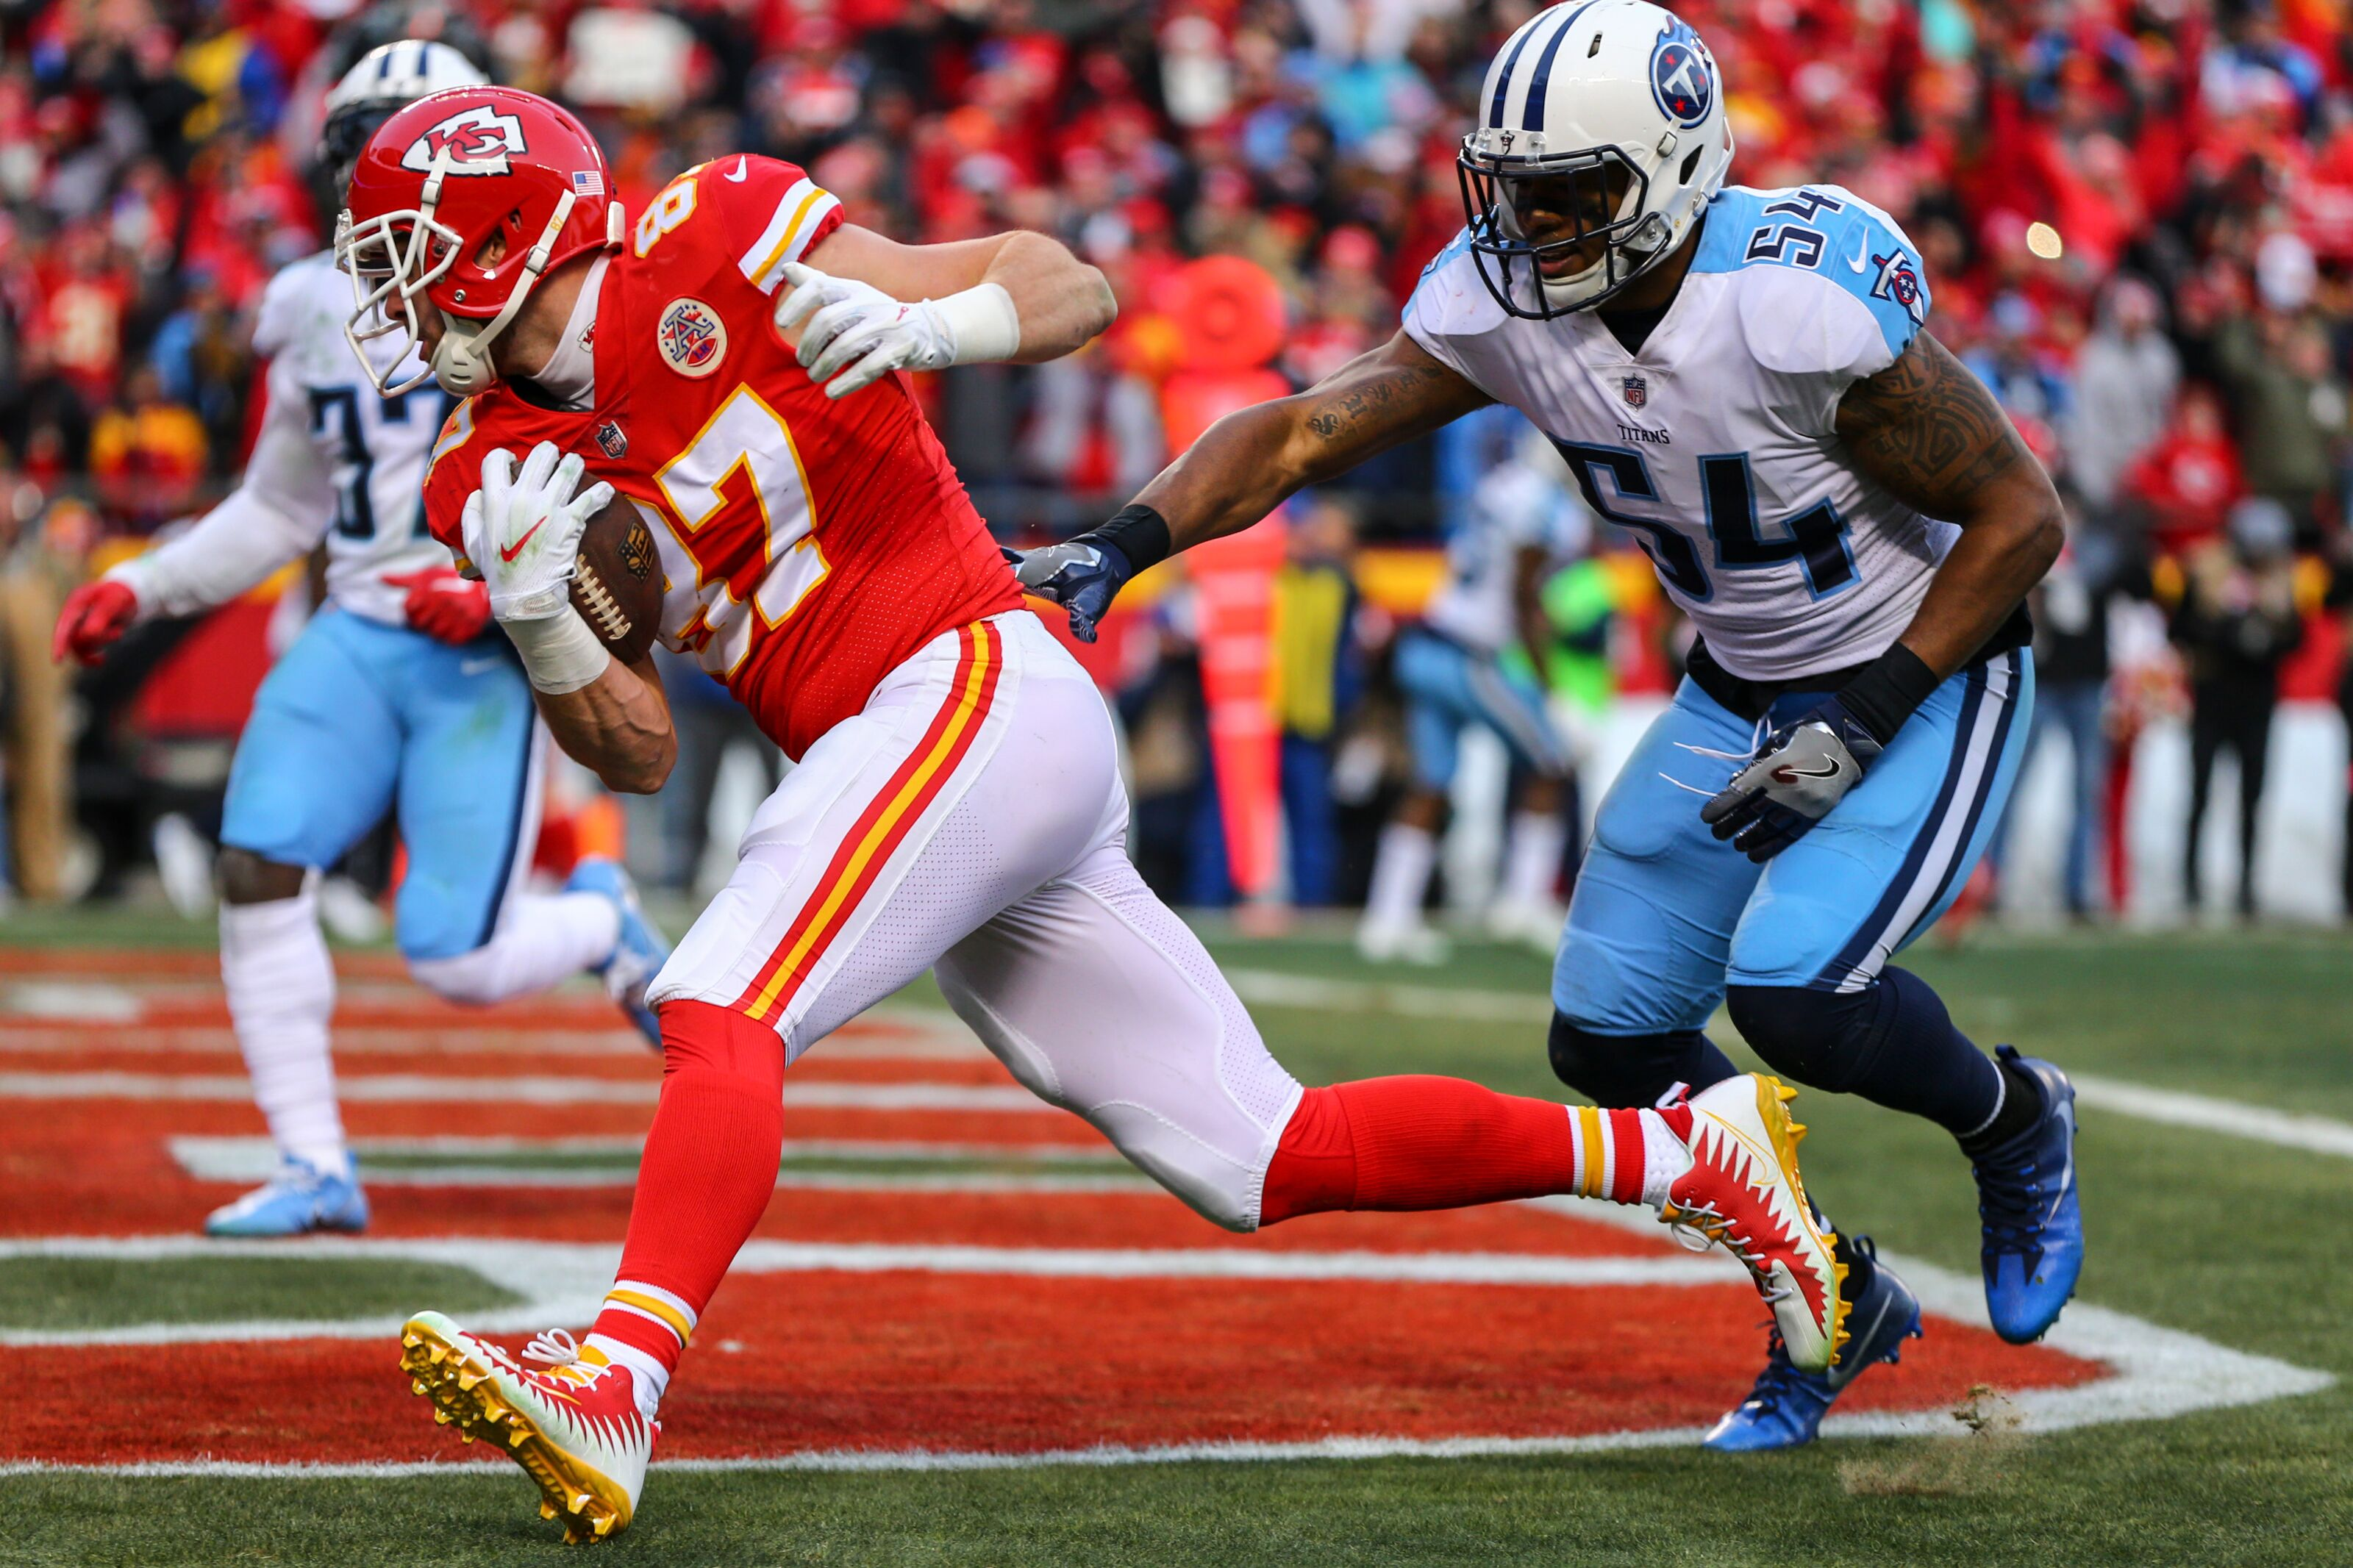 901934840-wild-card-round-tennessee-titans-v-kansas-city-chiefs.jpg